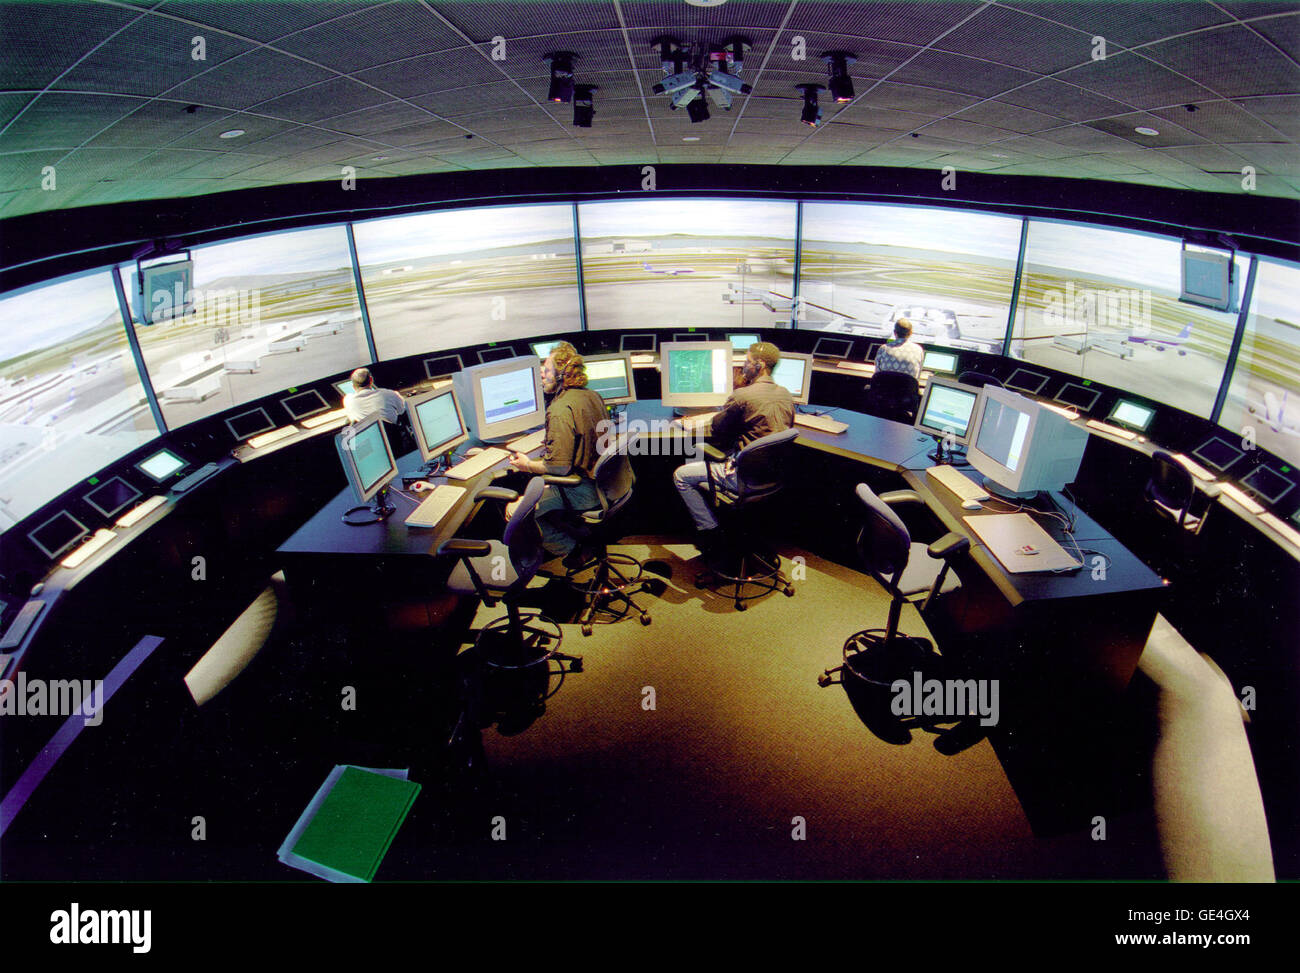 NASA's Virtual Airport Tower is located at the Ames Research Center, Moffett Field, California. The Virtual - Stock Image